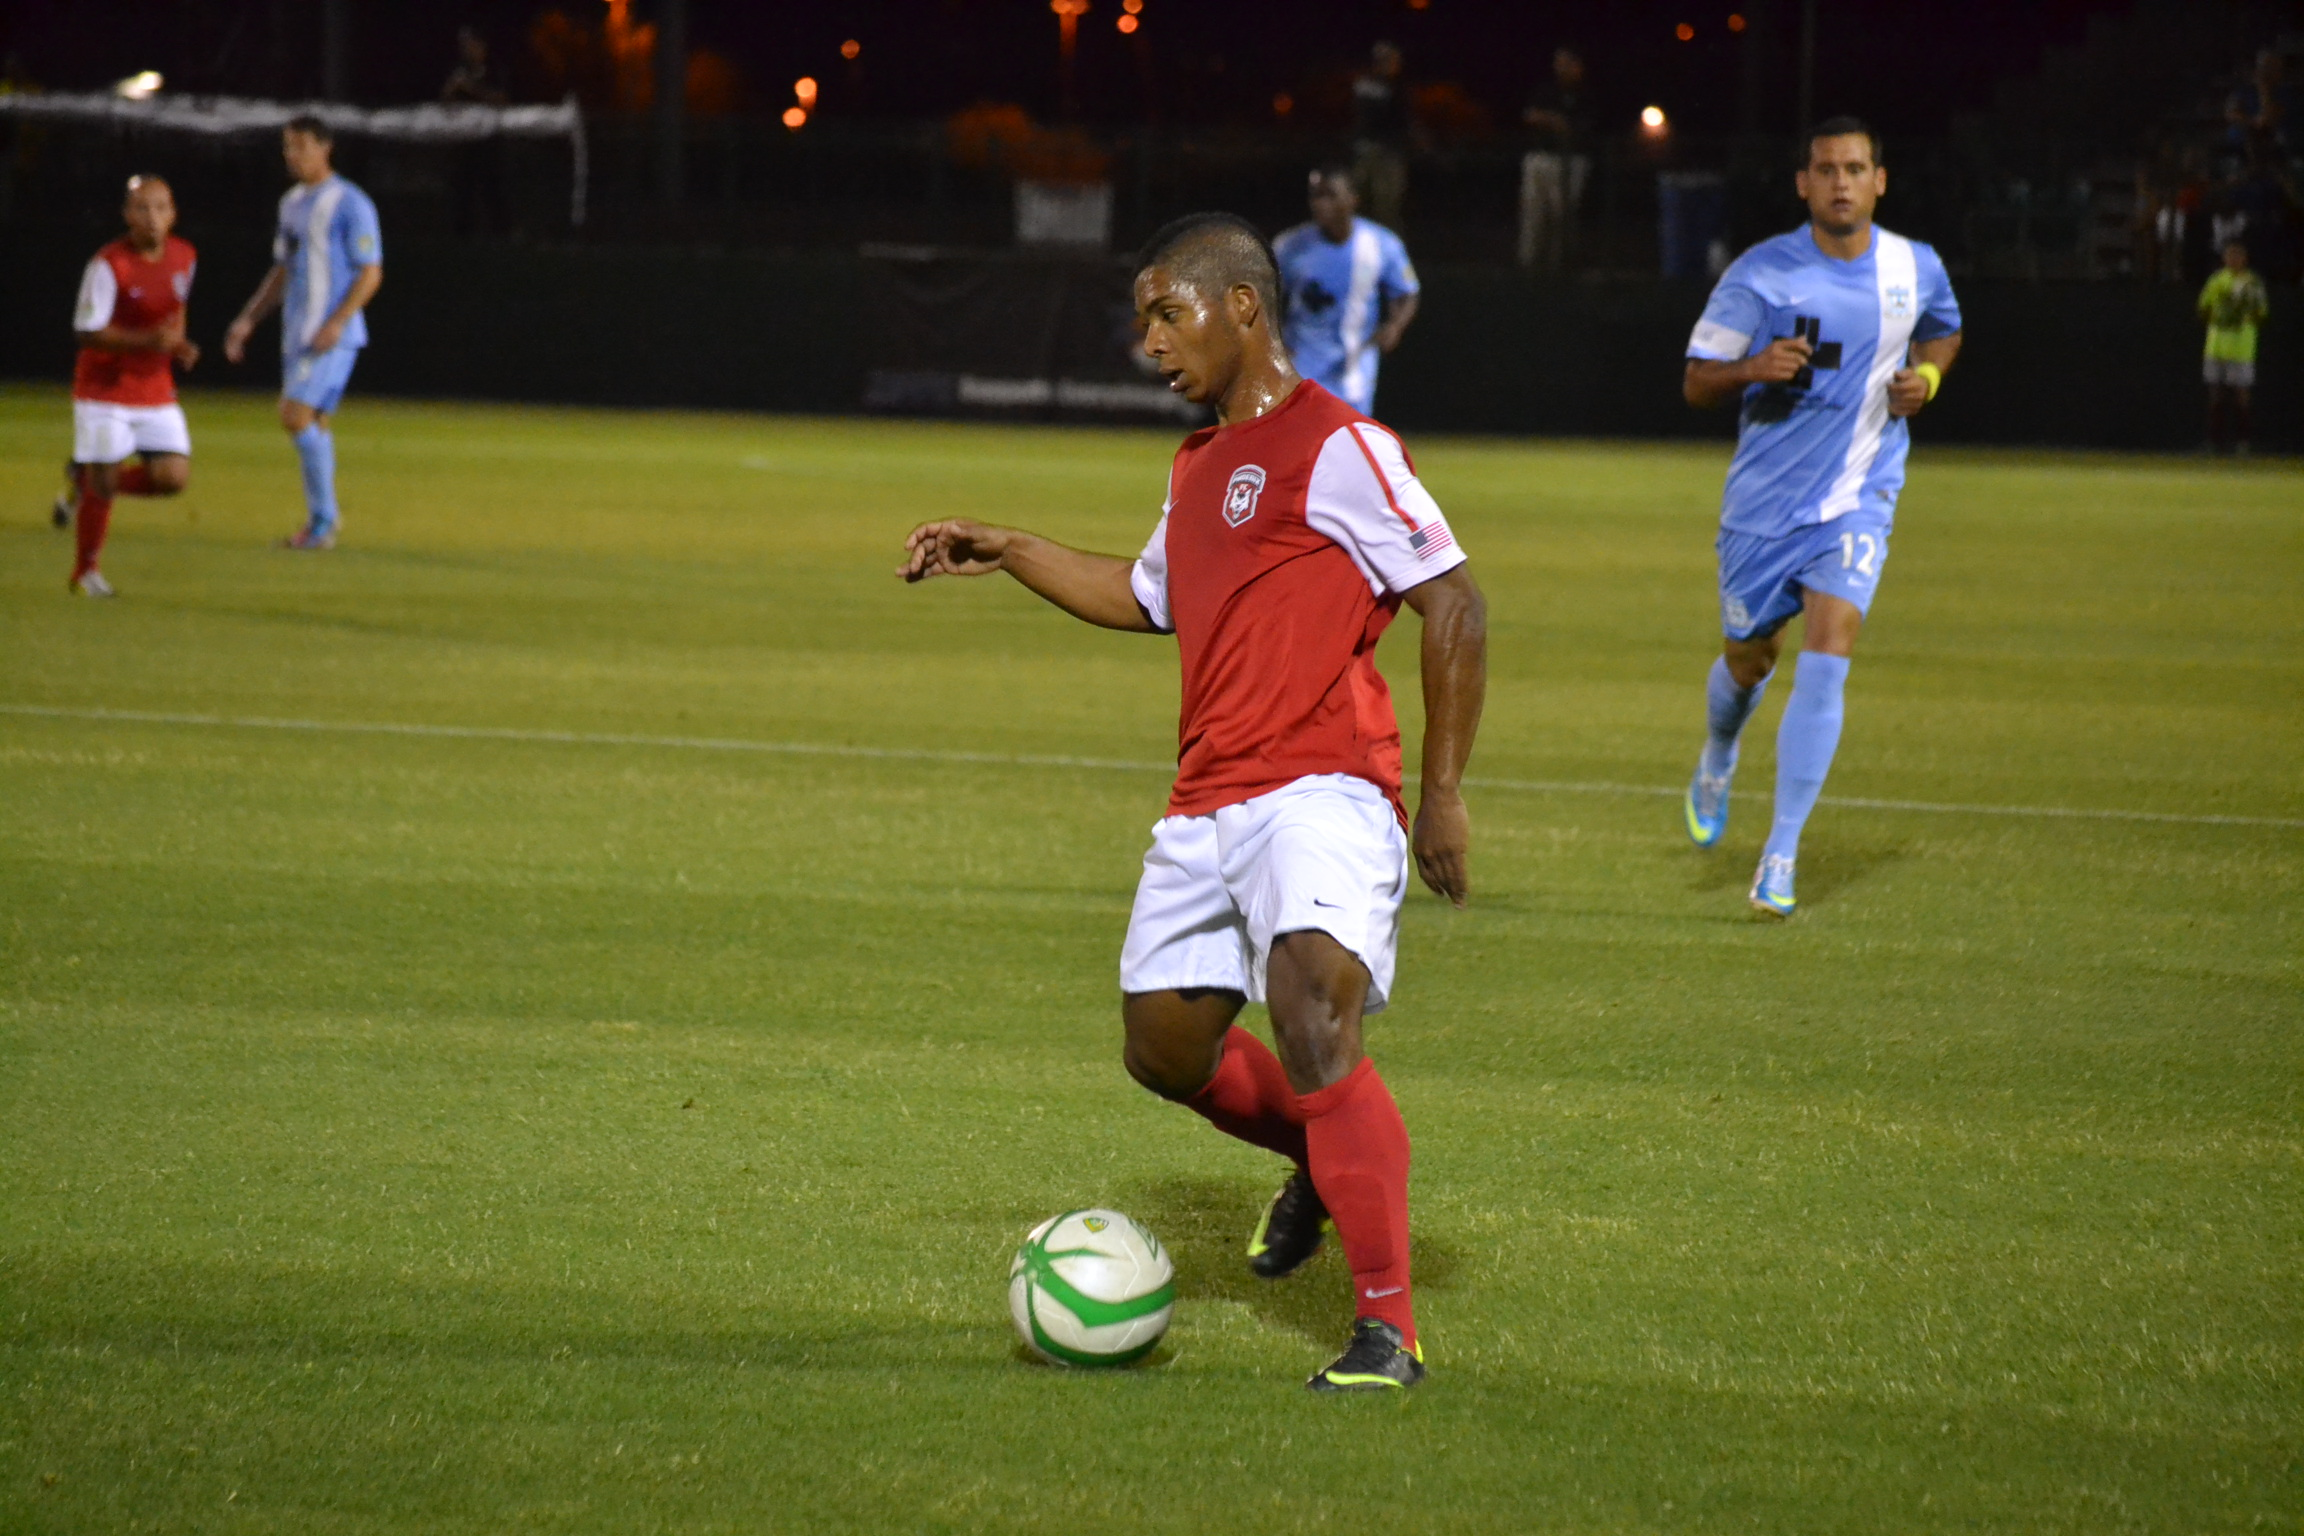 Phx looks to win second in a row; FC Tucson awaits Open ...